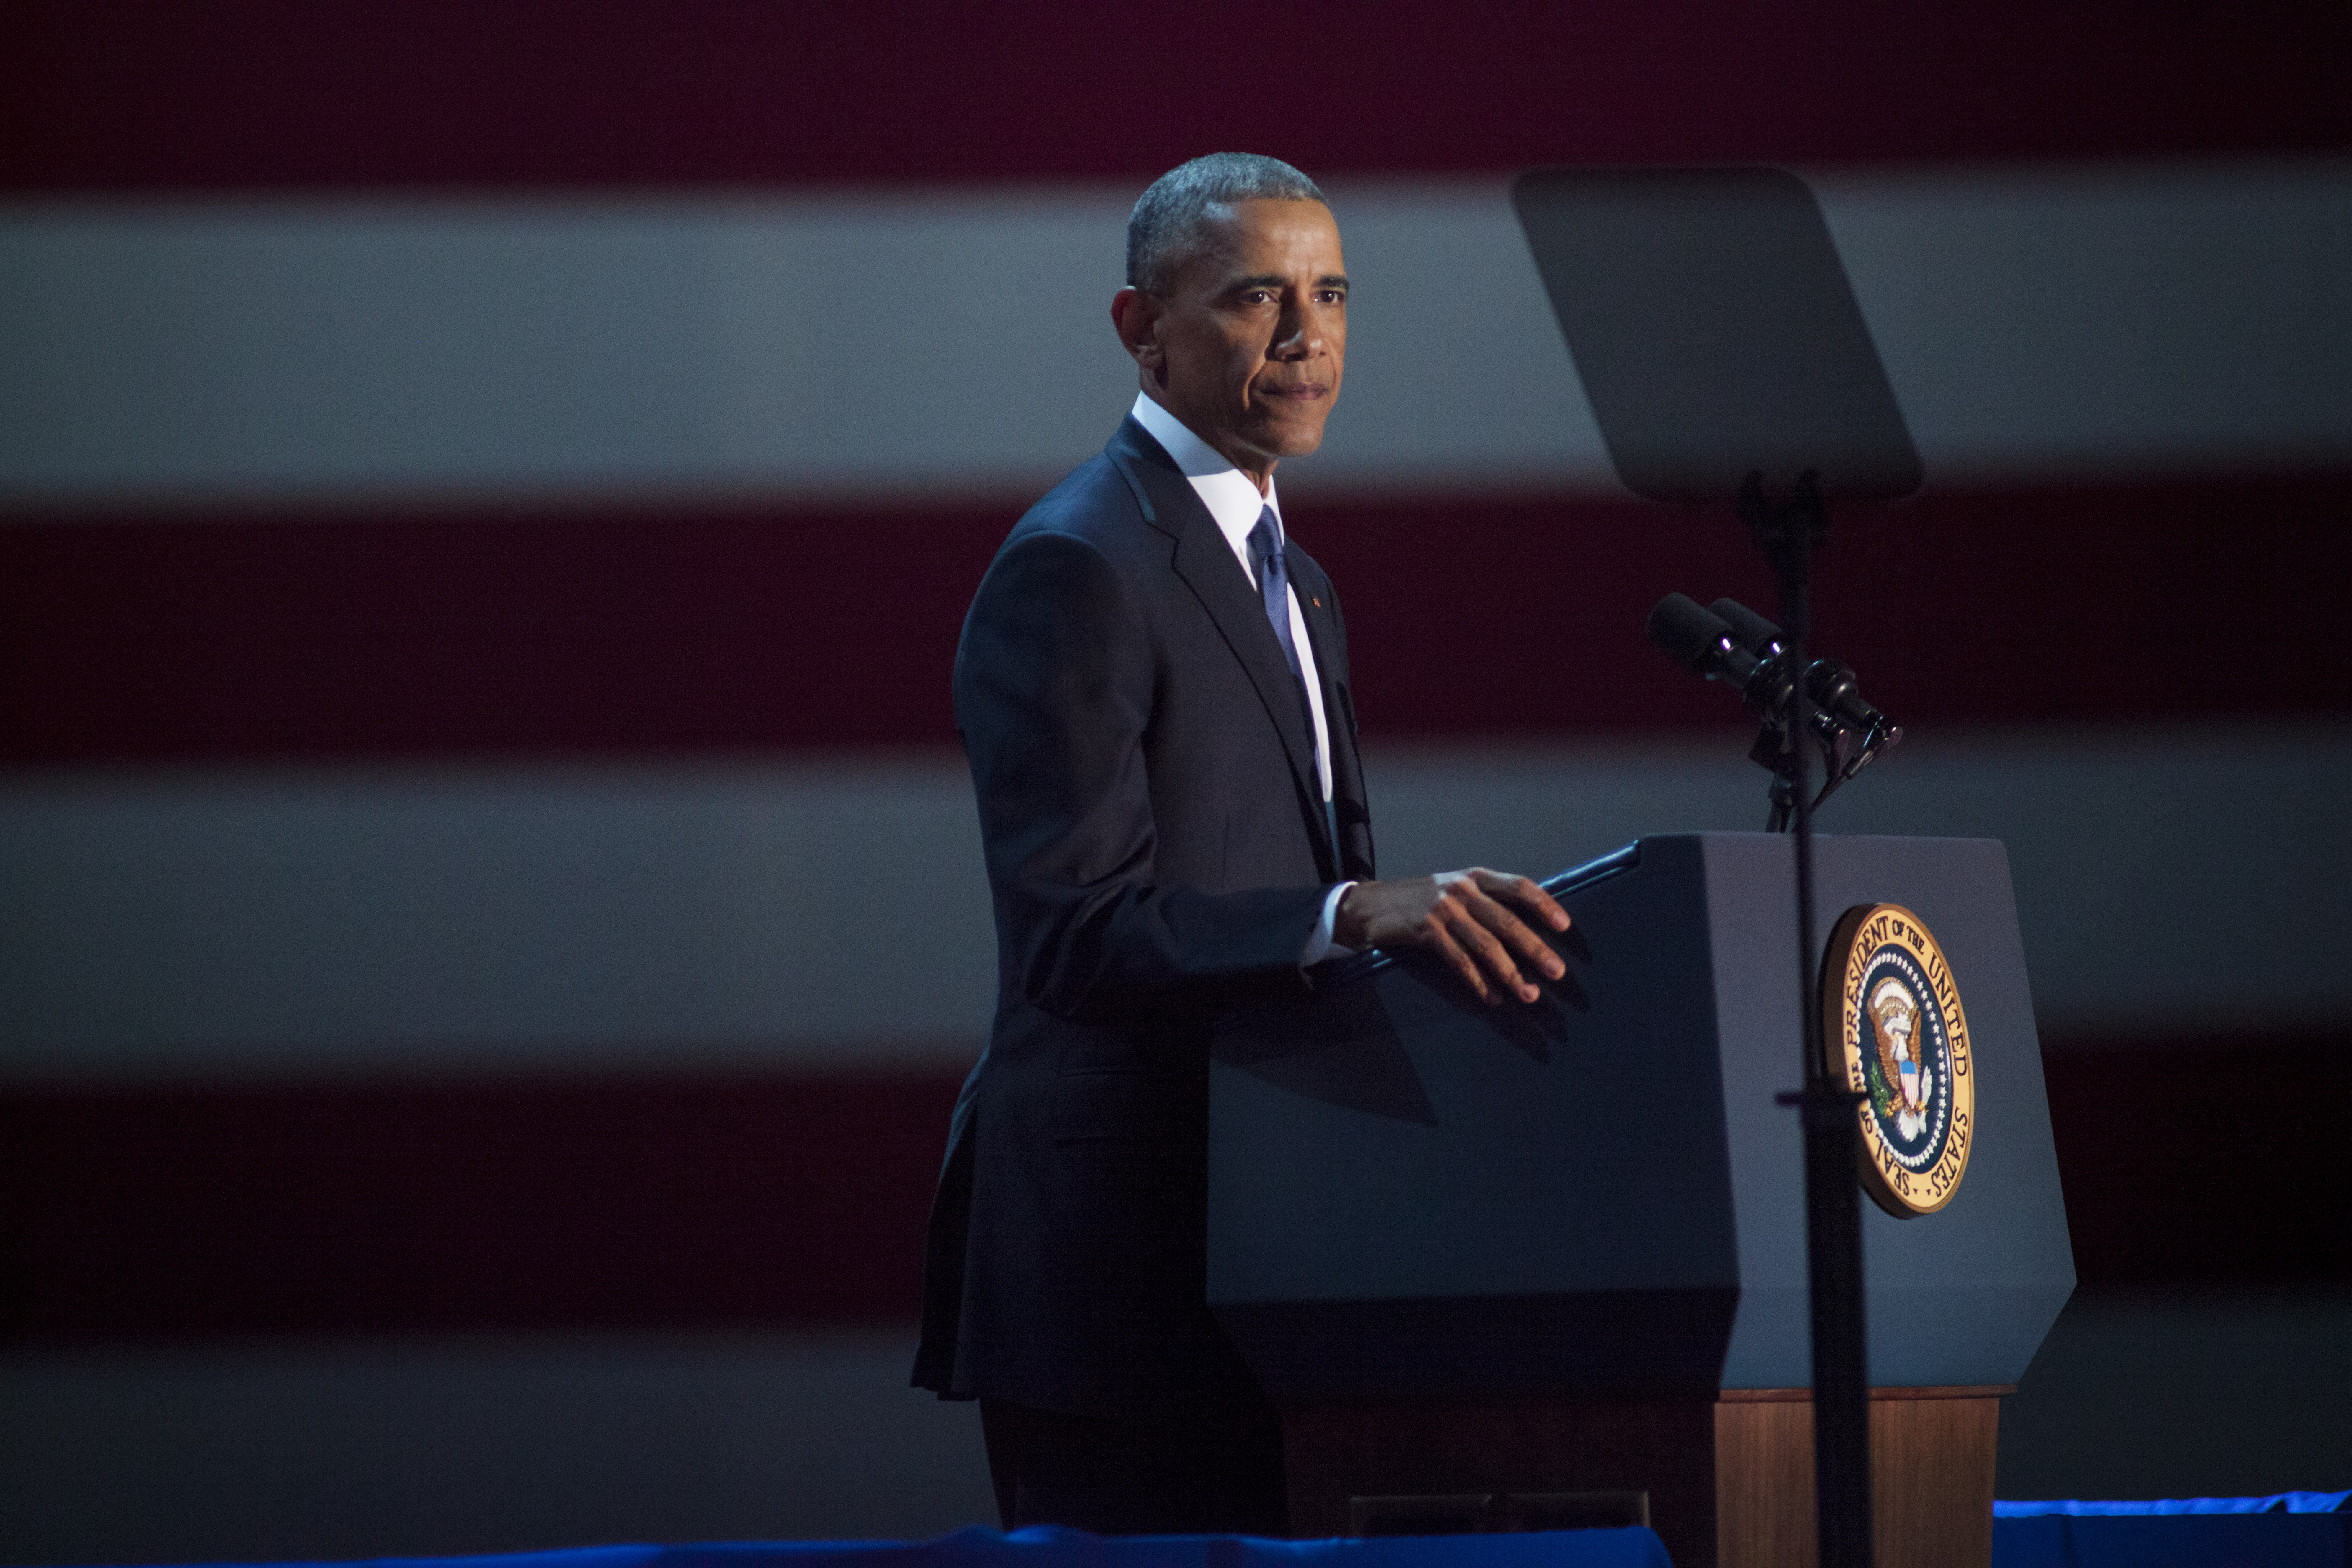 U.S. President Barack Obama speaks to supporters during his farewell speech at McCormick Place on January 10, 2017 in Chicago, Ill.